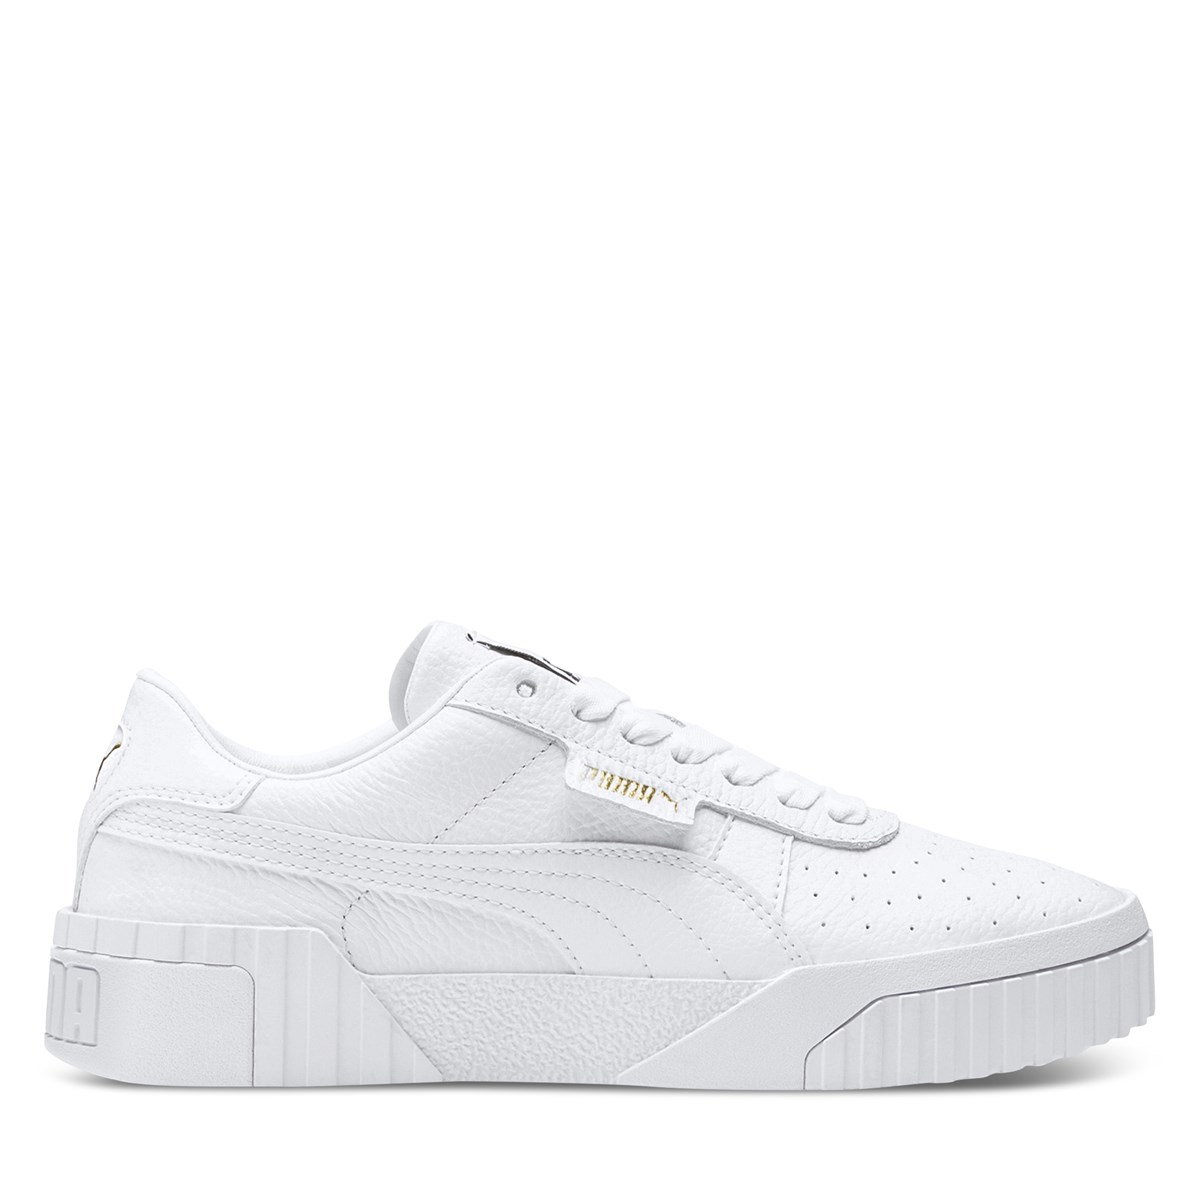 Women's Cali Sneakers in White